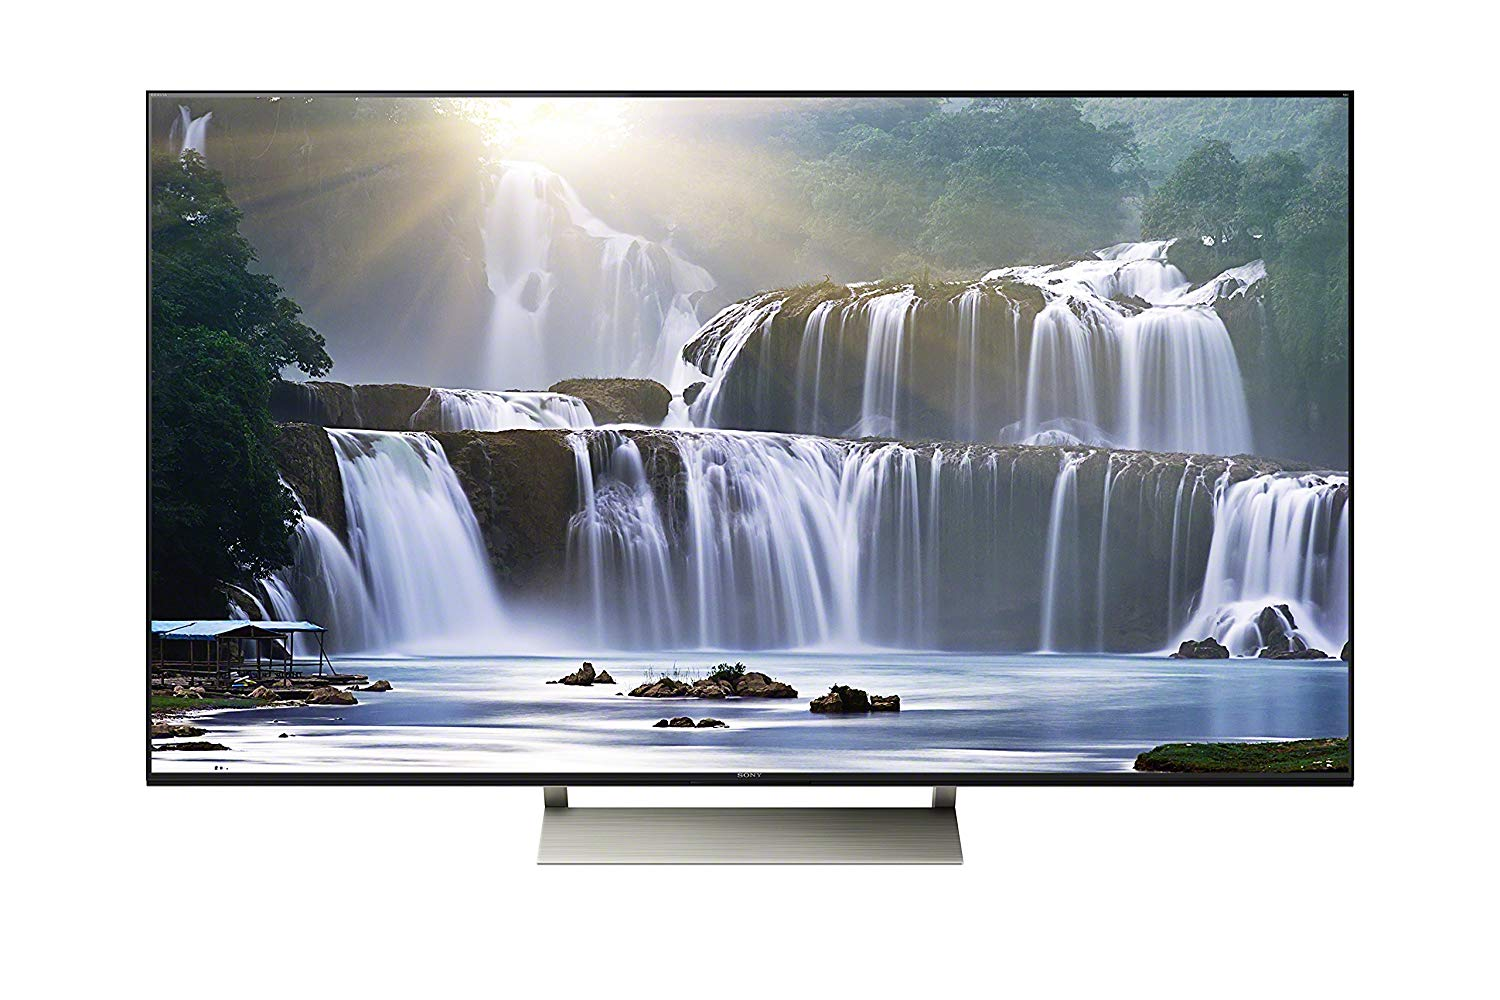 An image related to Sony XBR-55X930E 55-Inch HDR Flat Screen 4K LED 120Hz Smart TV